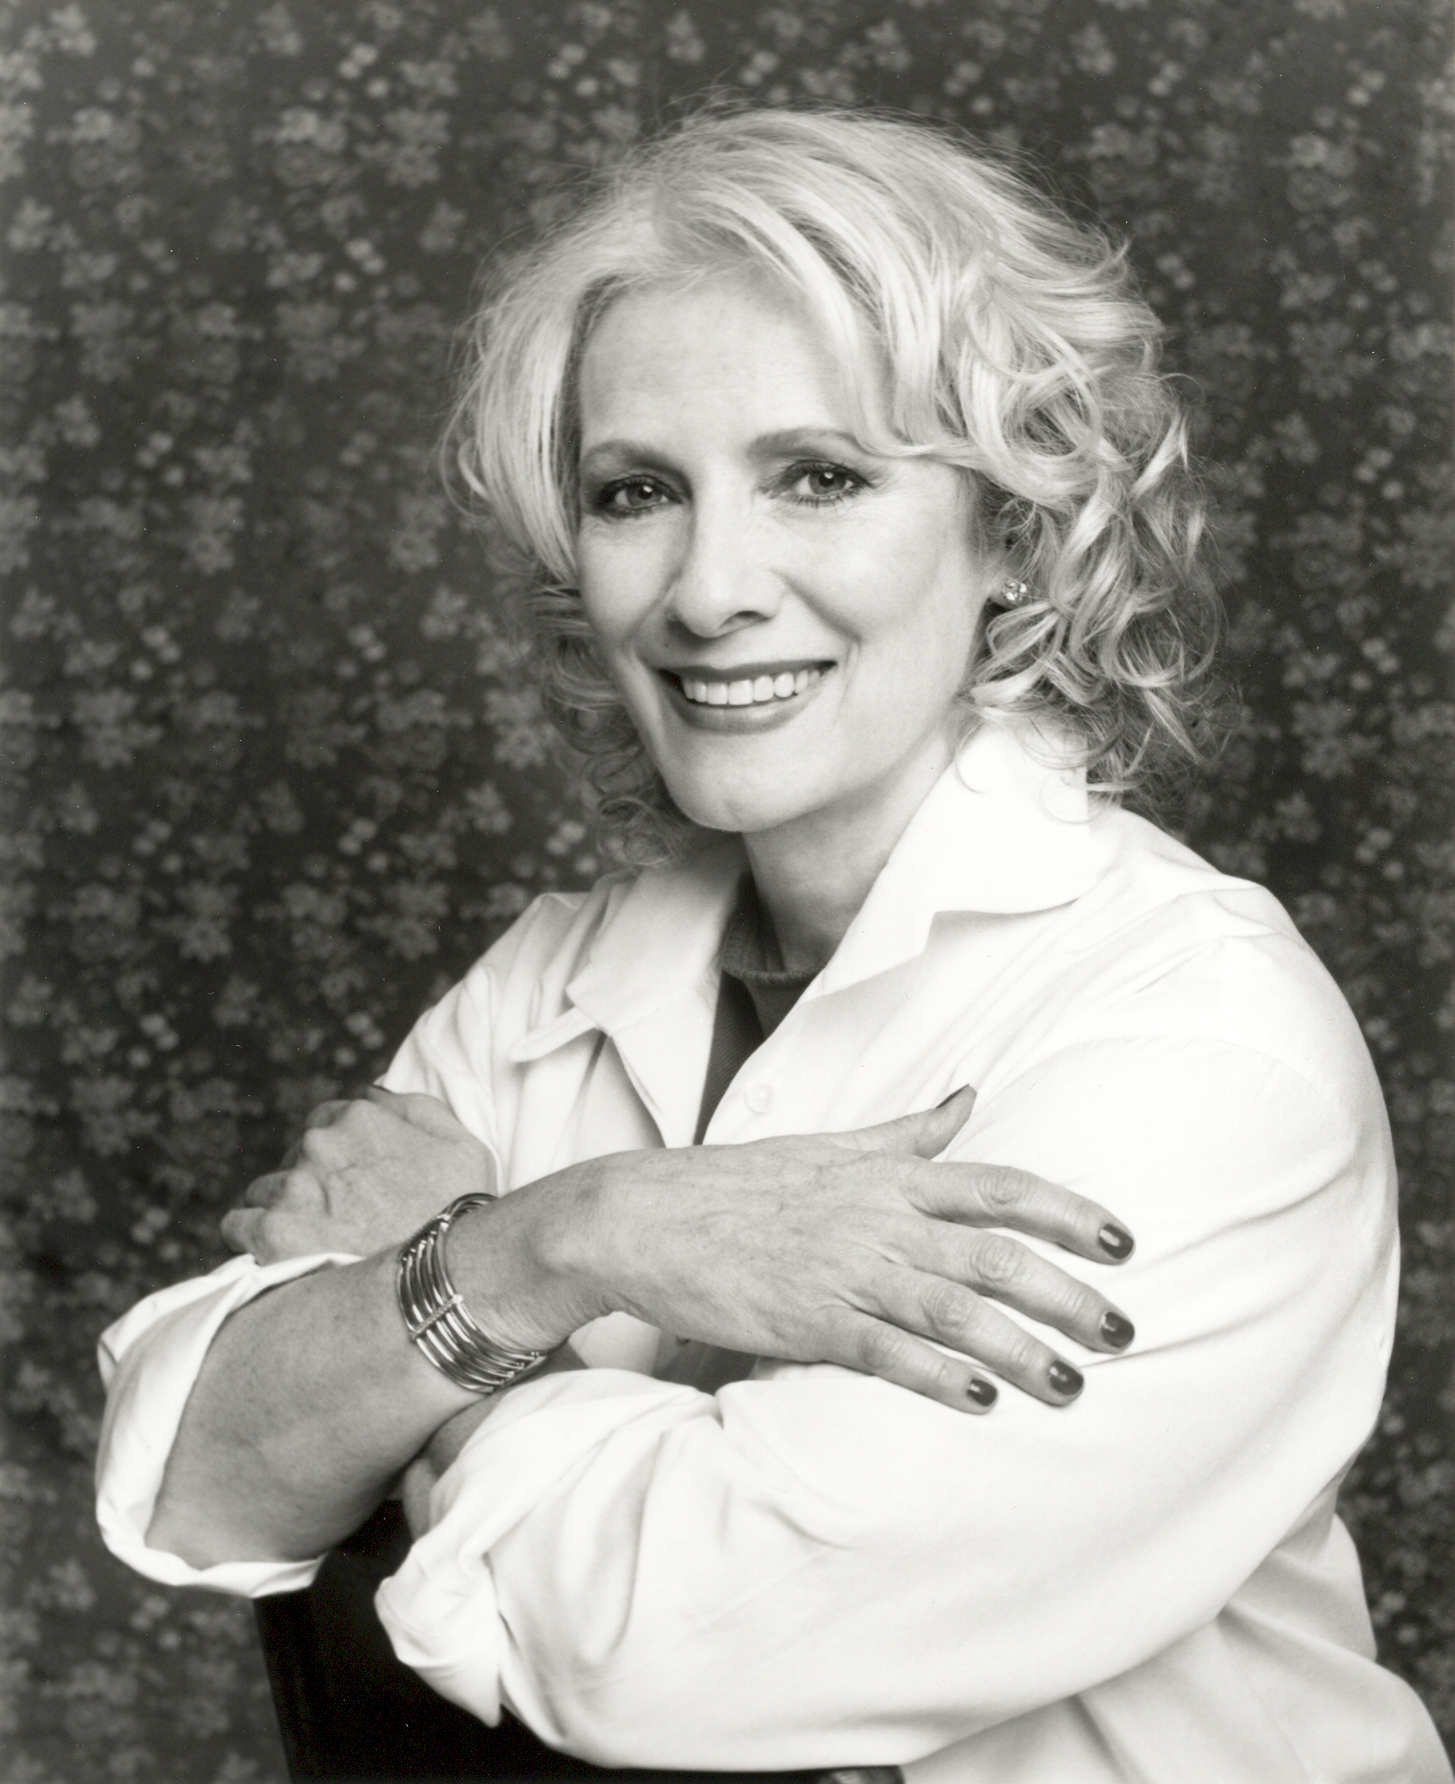 betty buckley movies and tv shows